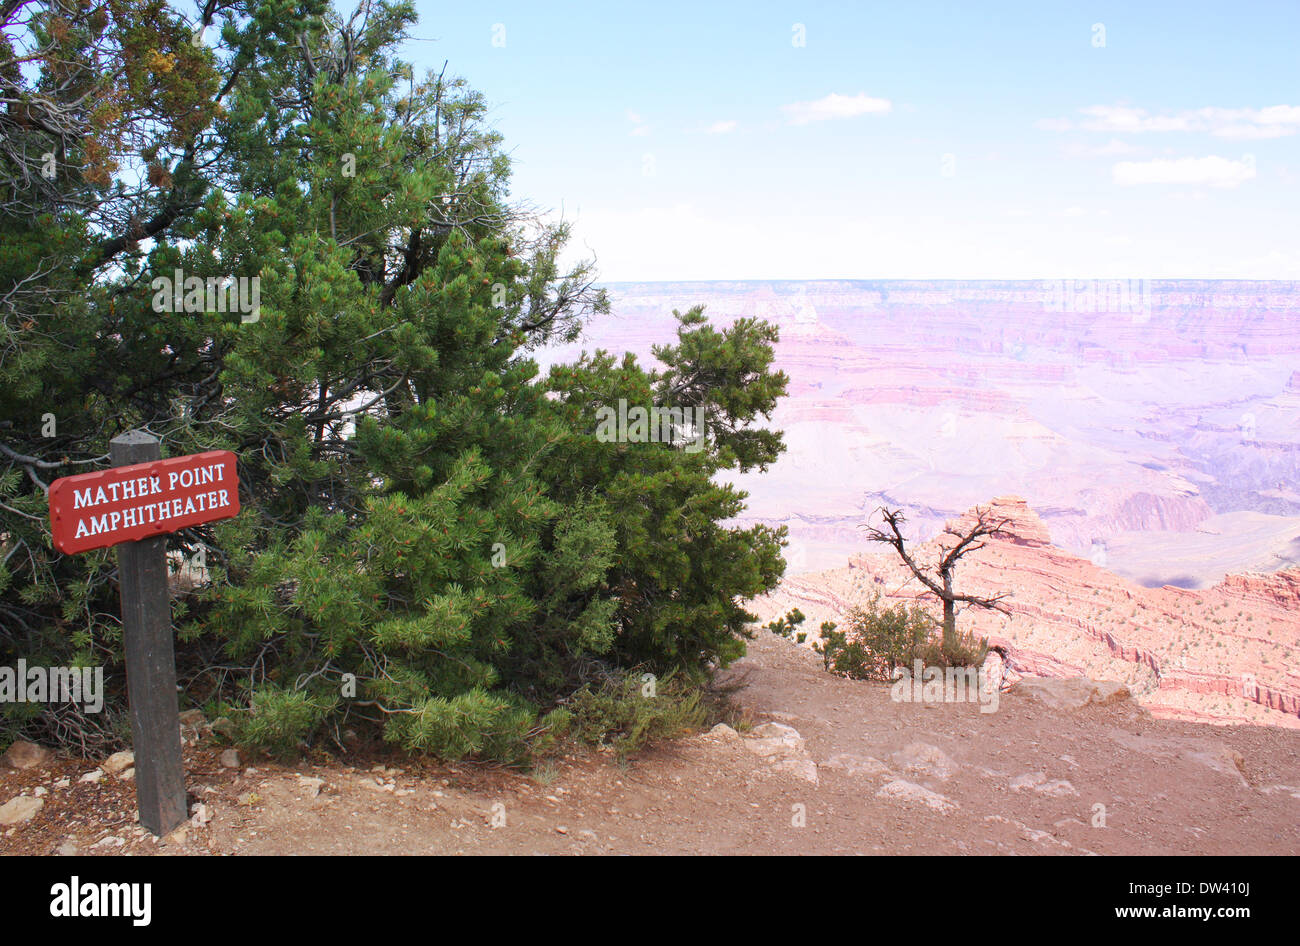 Mather point sign board in Grand Canyon, USA Stock Photo